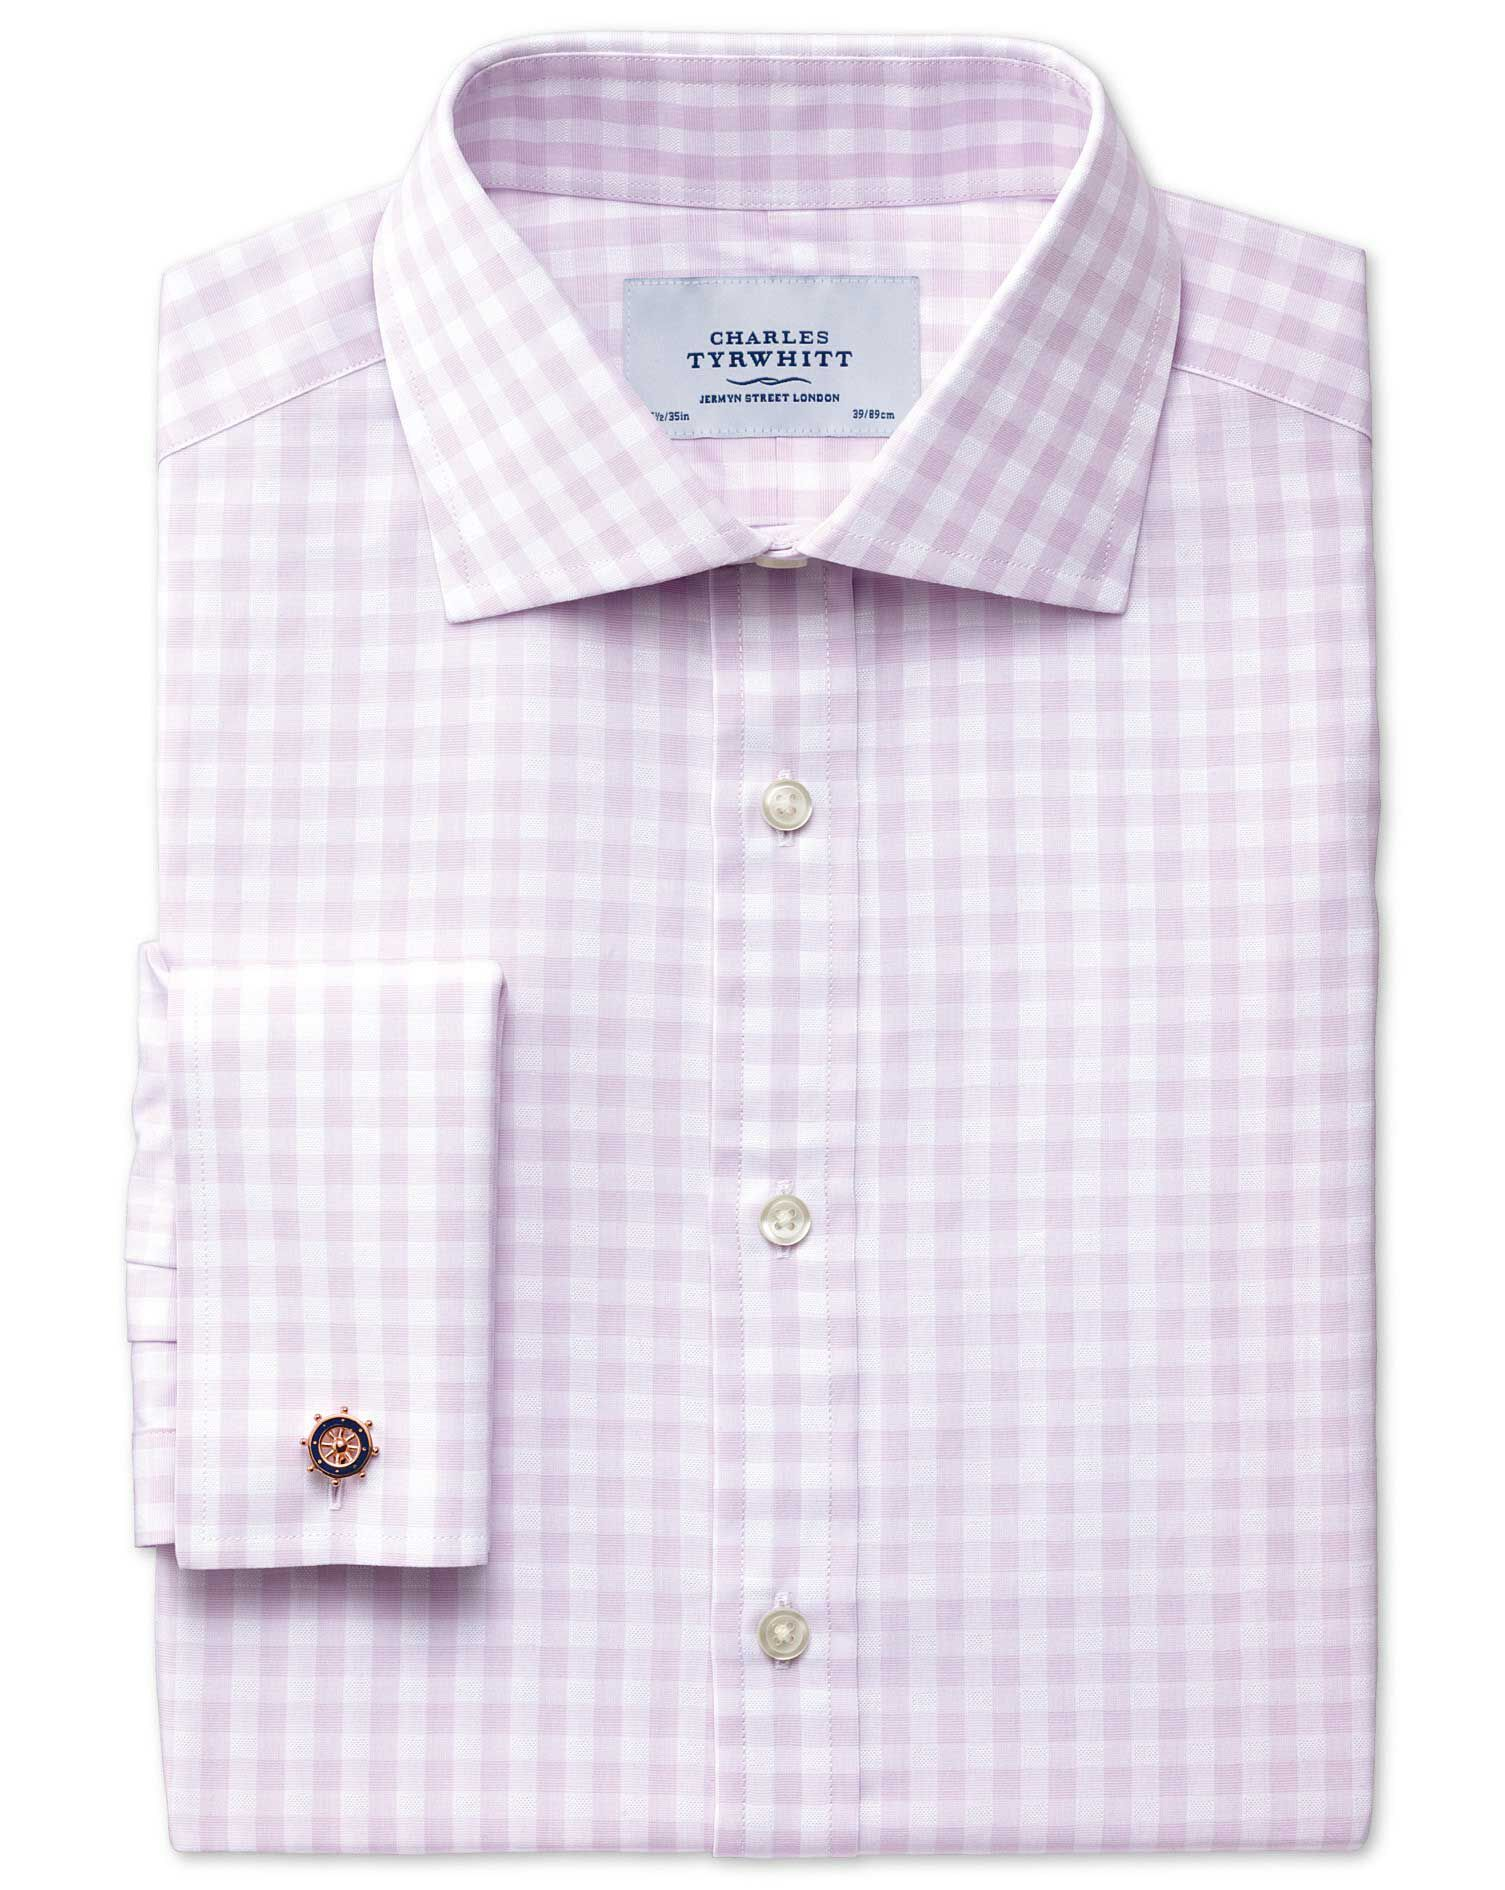 Classic Fit Semi-Cutaway Collar Textured Gingham Lilac Cotton Formal Shirt Double Cuff Size 15.5/36